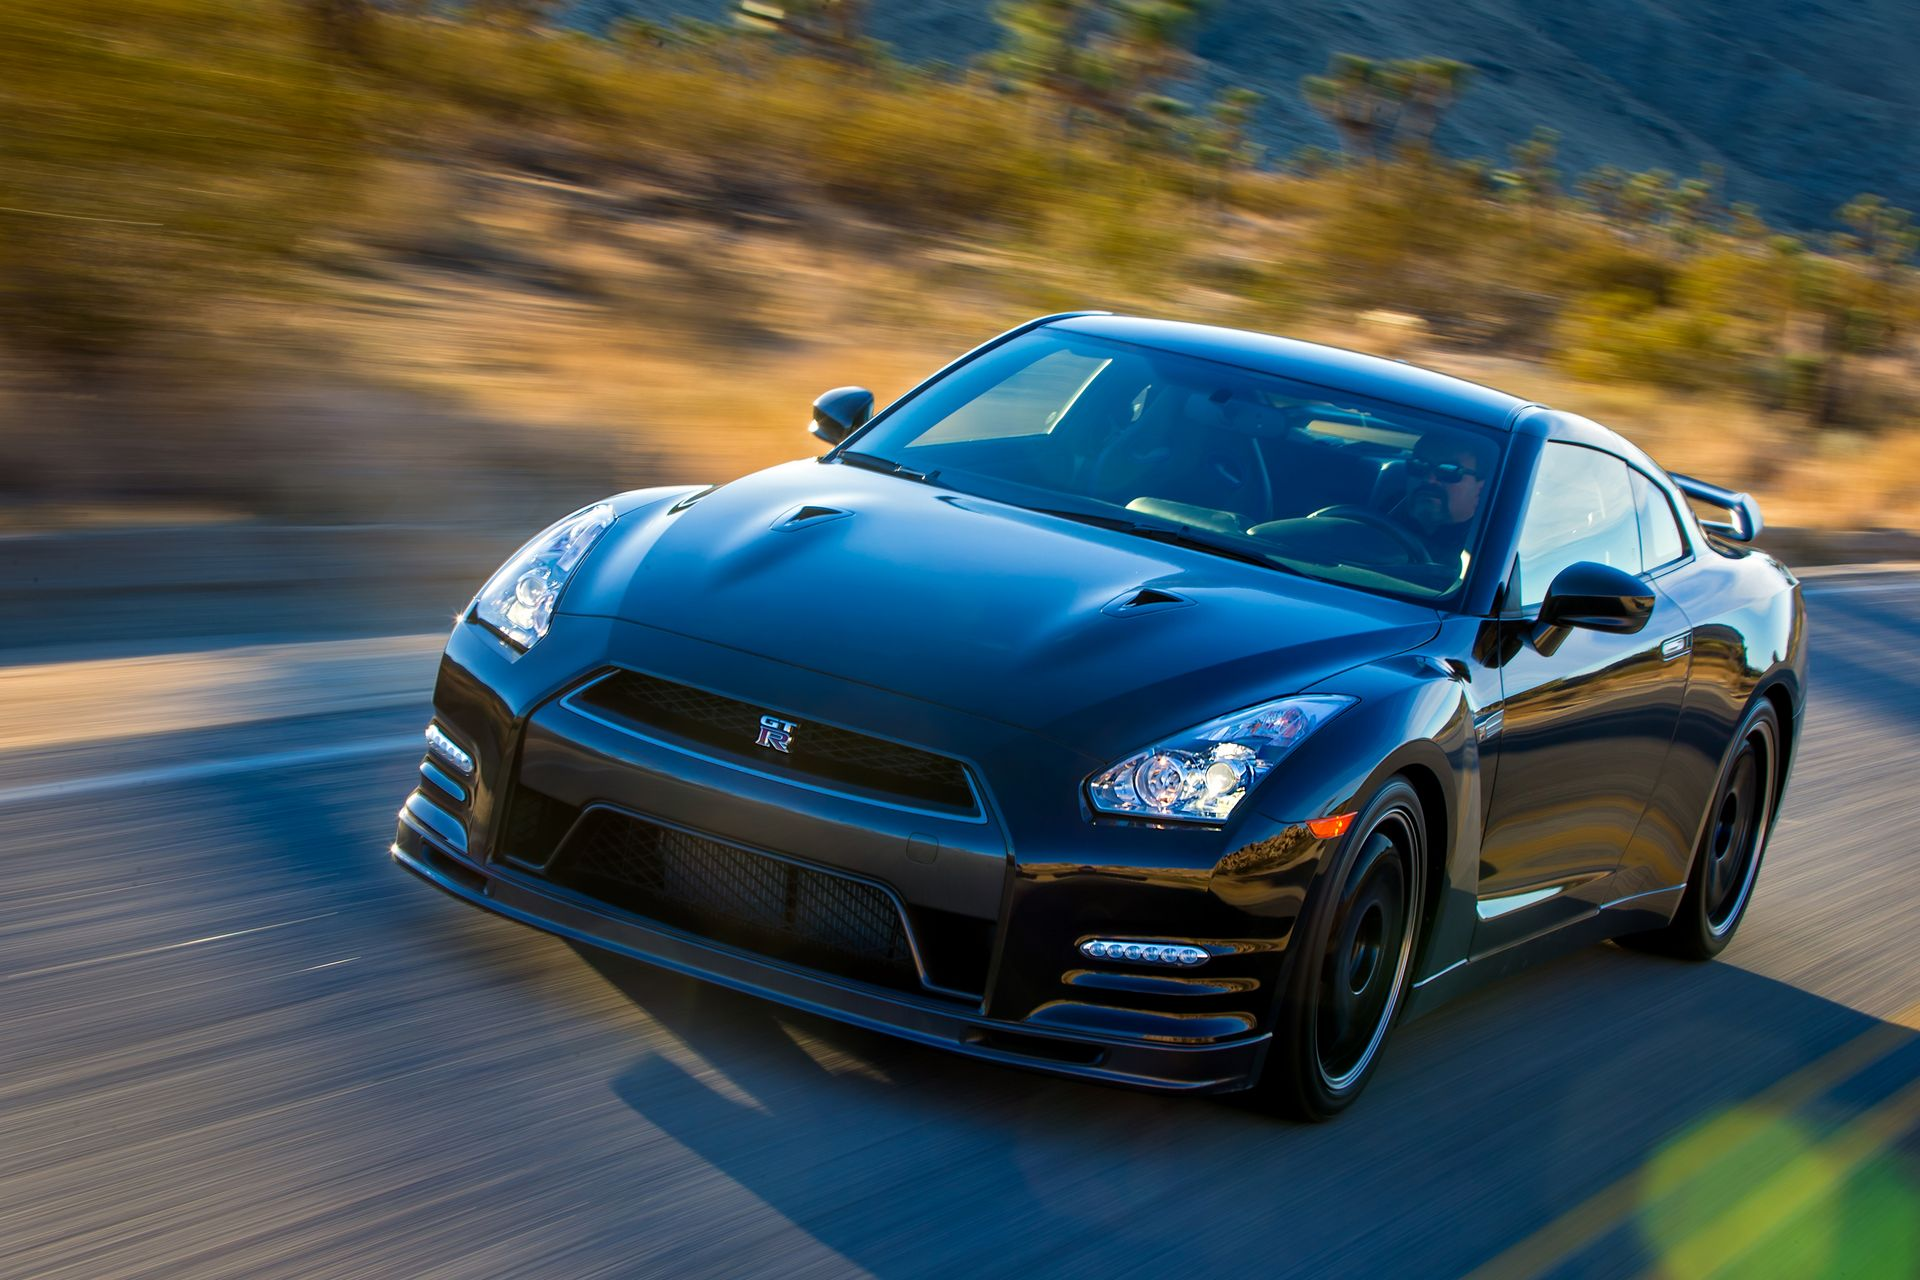 Nissan Cars - News: 2014 GT-R Nismo boasts over 425kW